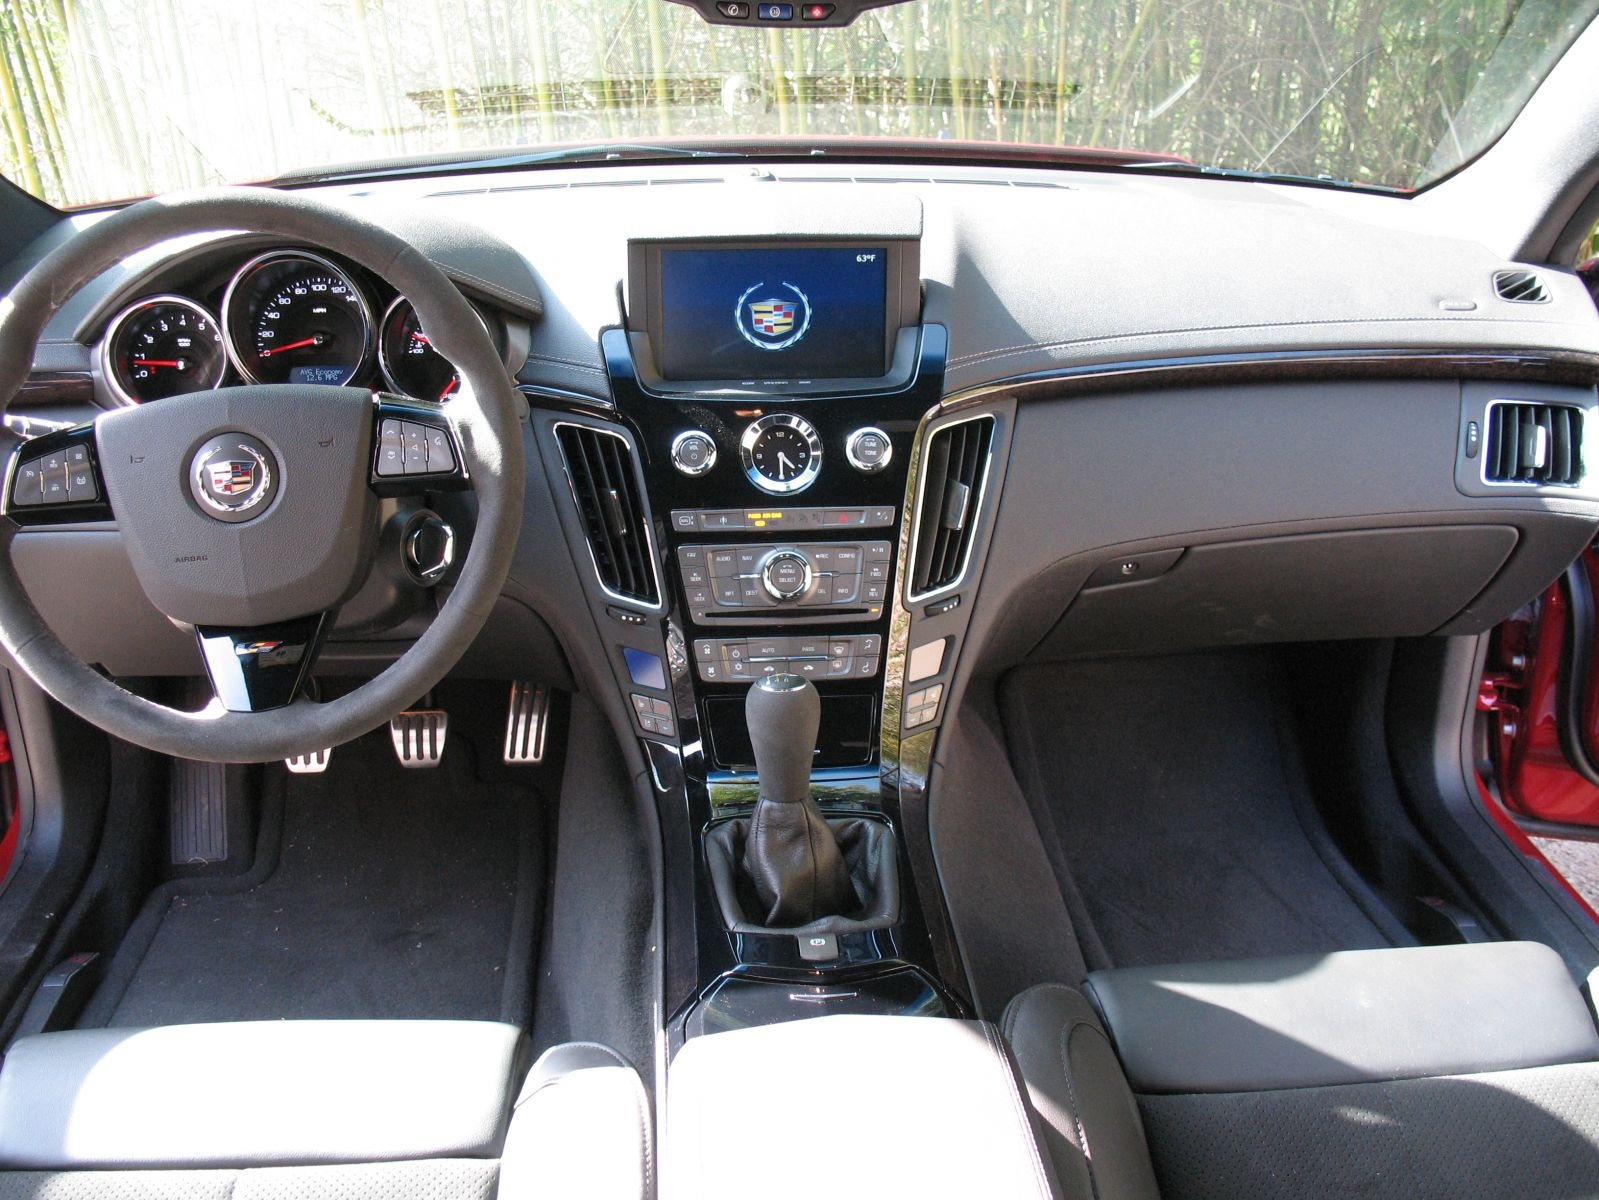 2011 Cadillac Cts V Coupe Interior Members Gallery Cheers And Gears